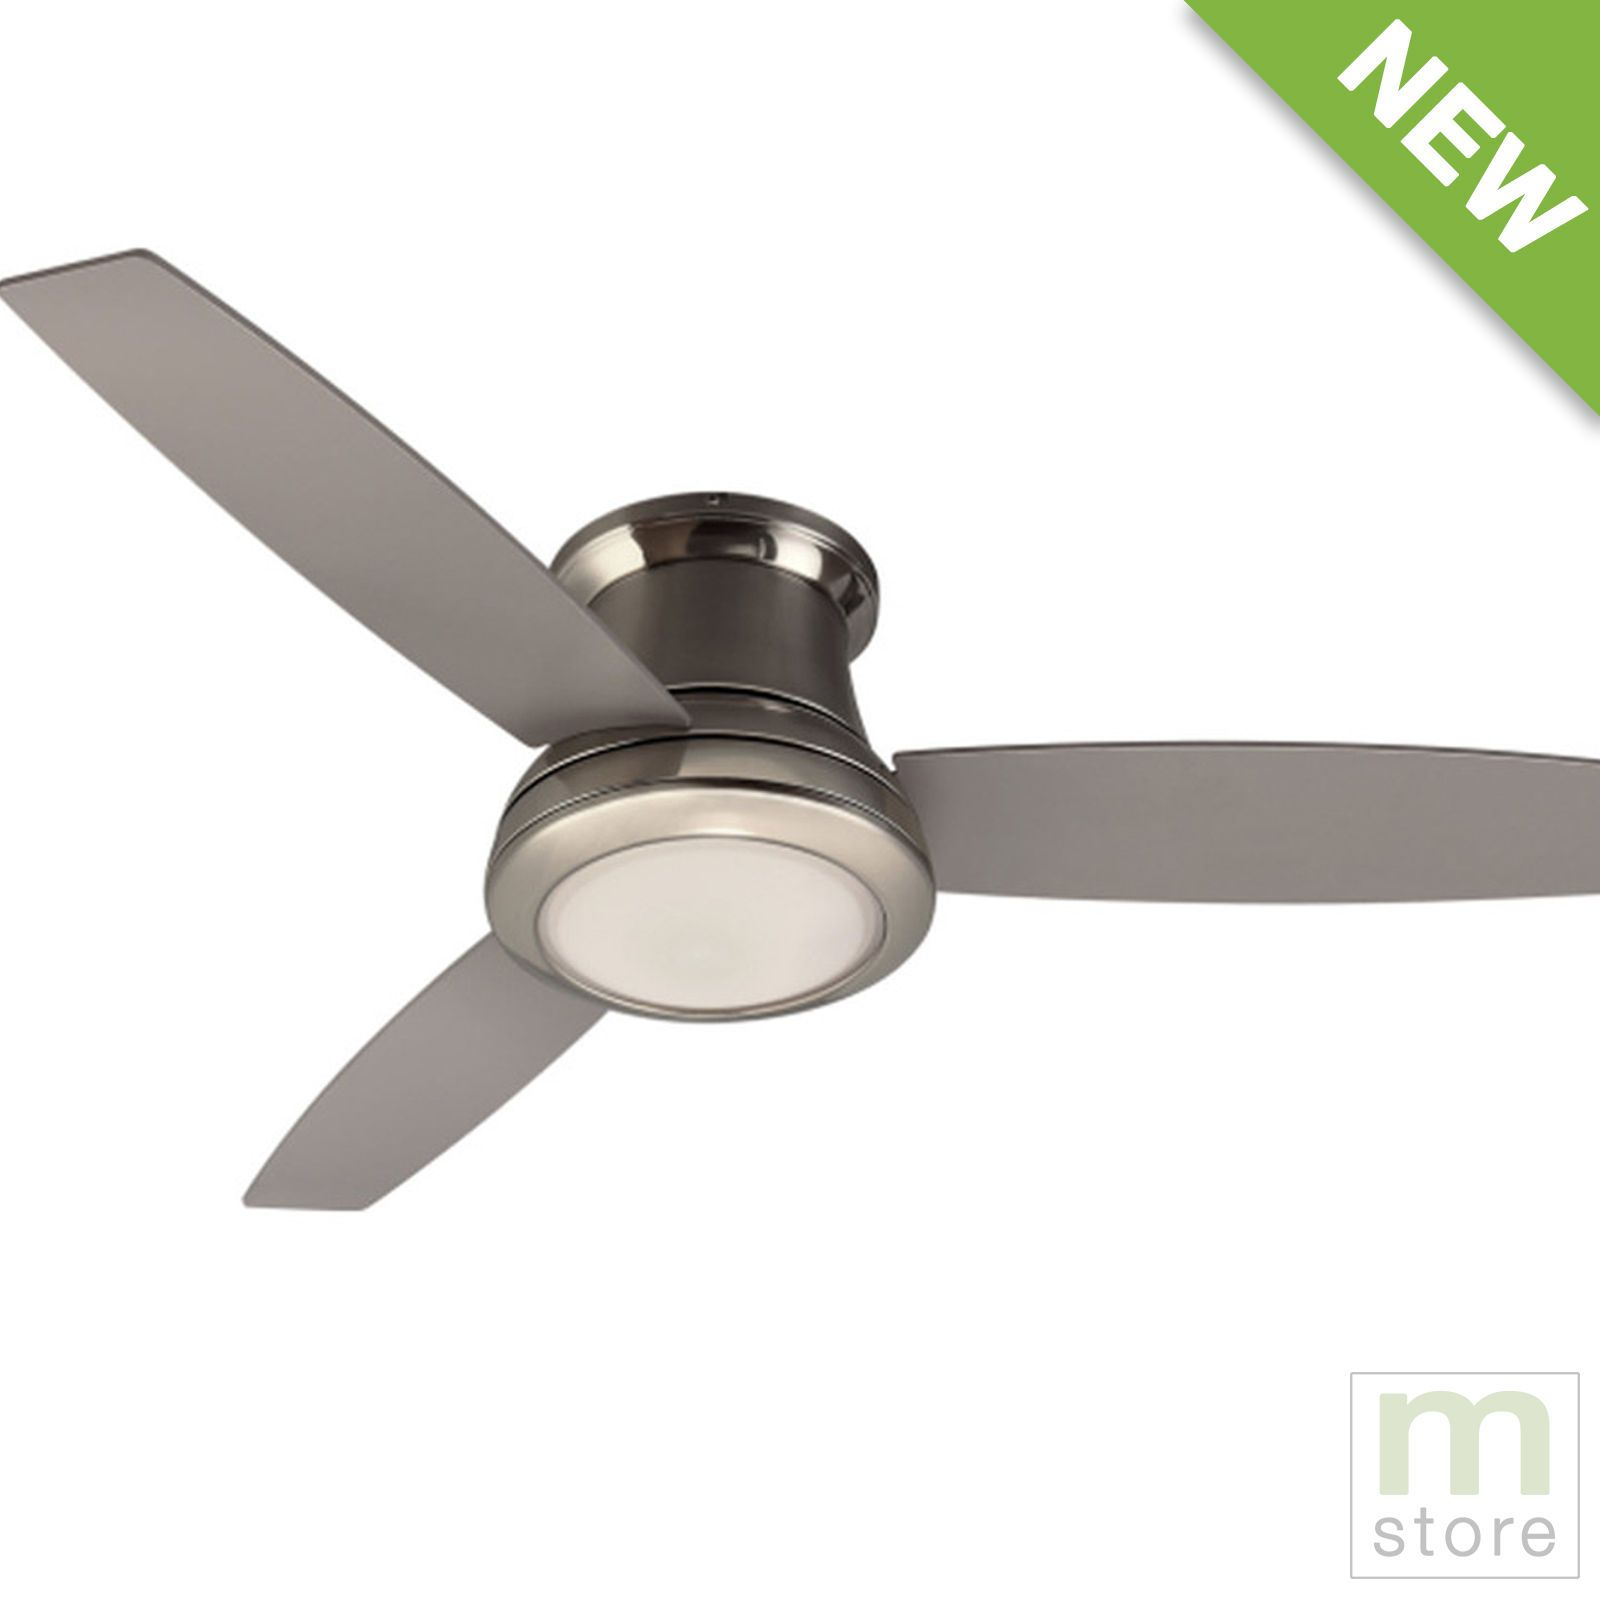 Details About 52 Ceiling Fan With Light Kit And Remote Brushed